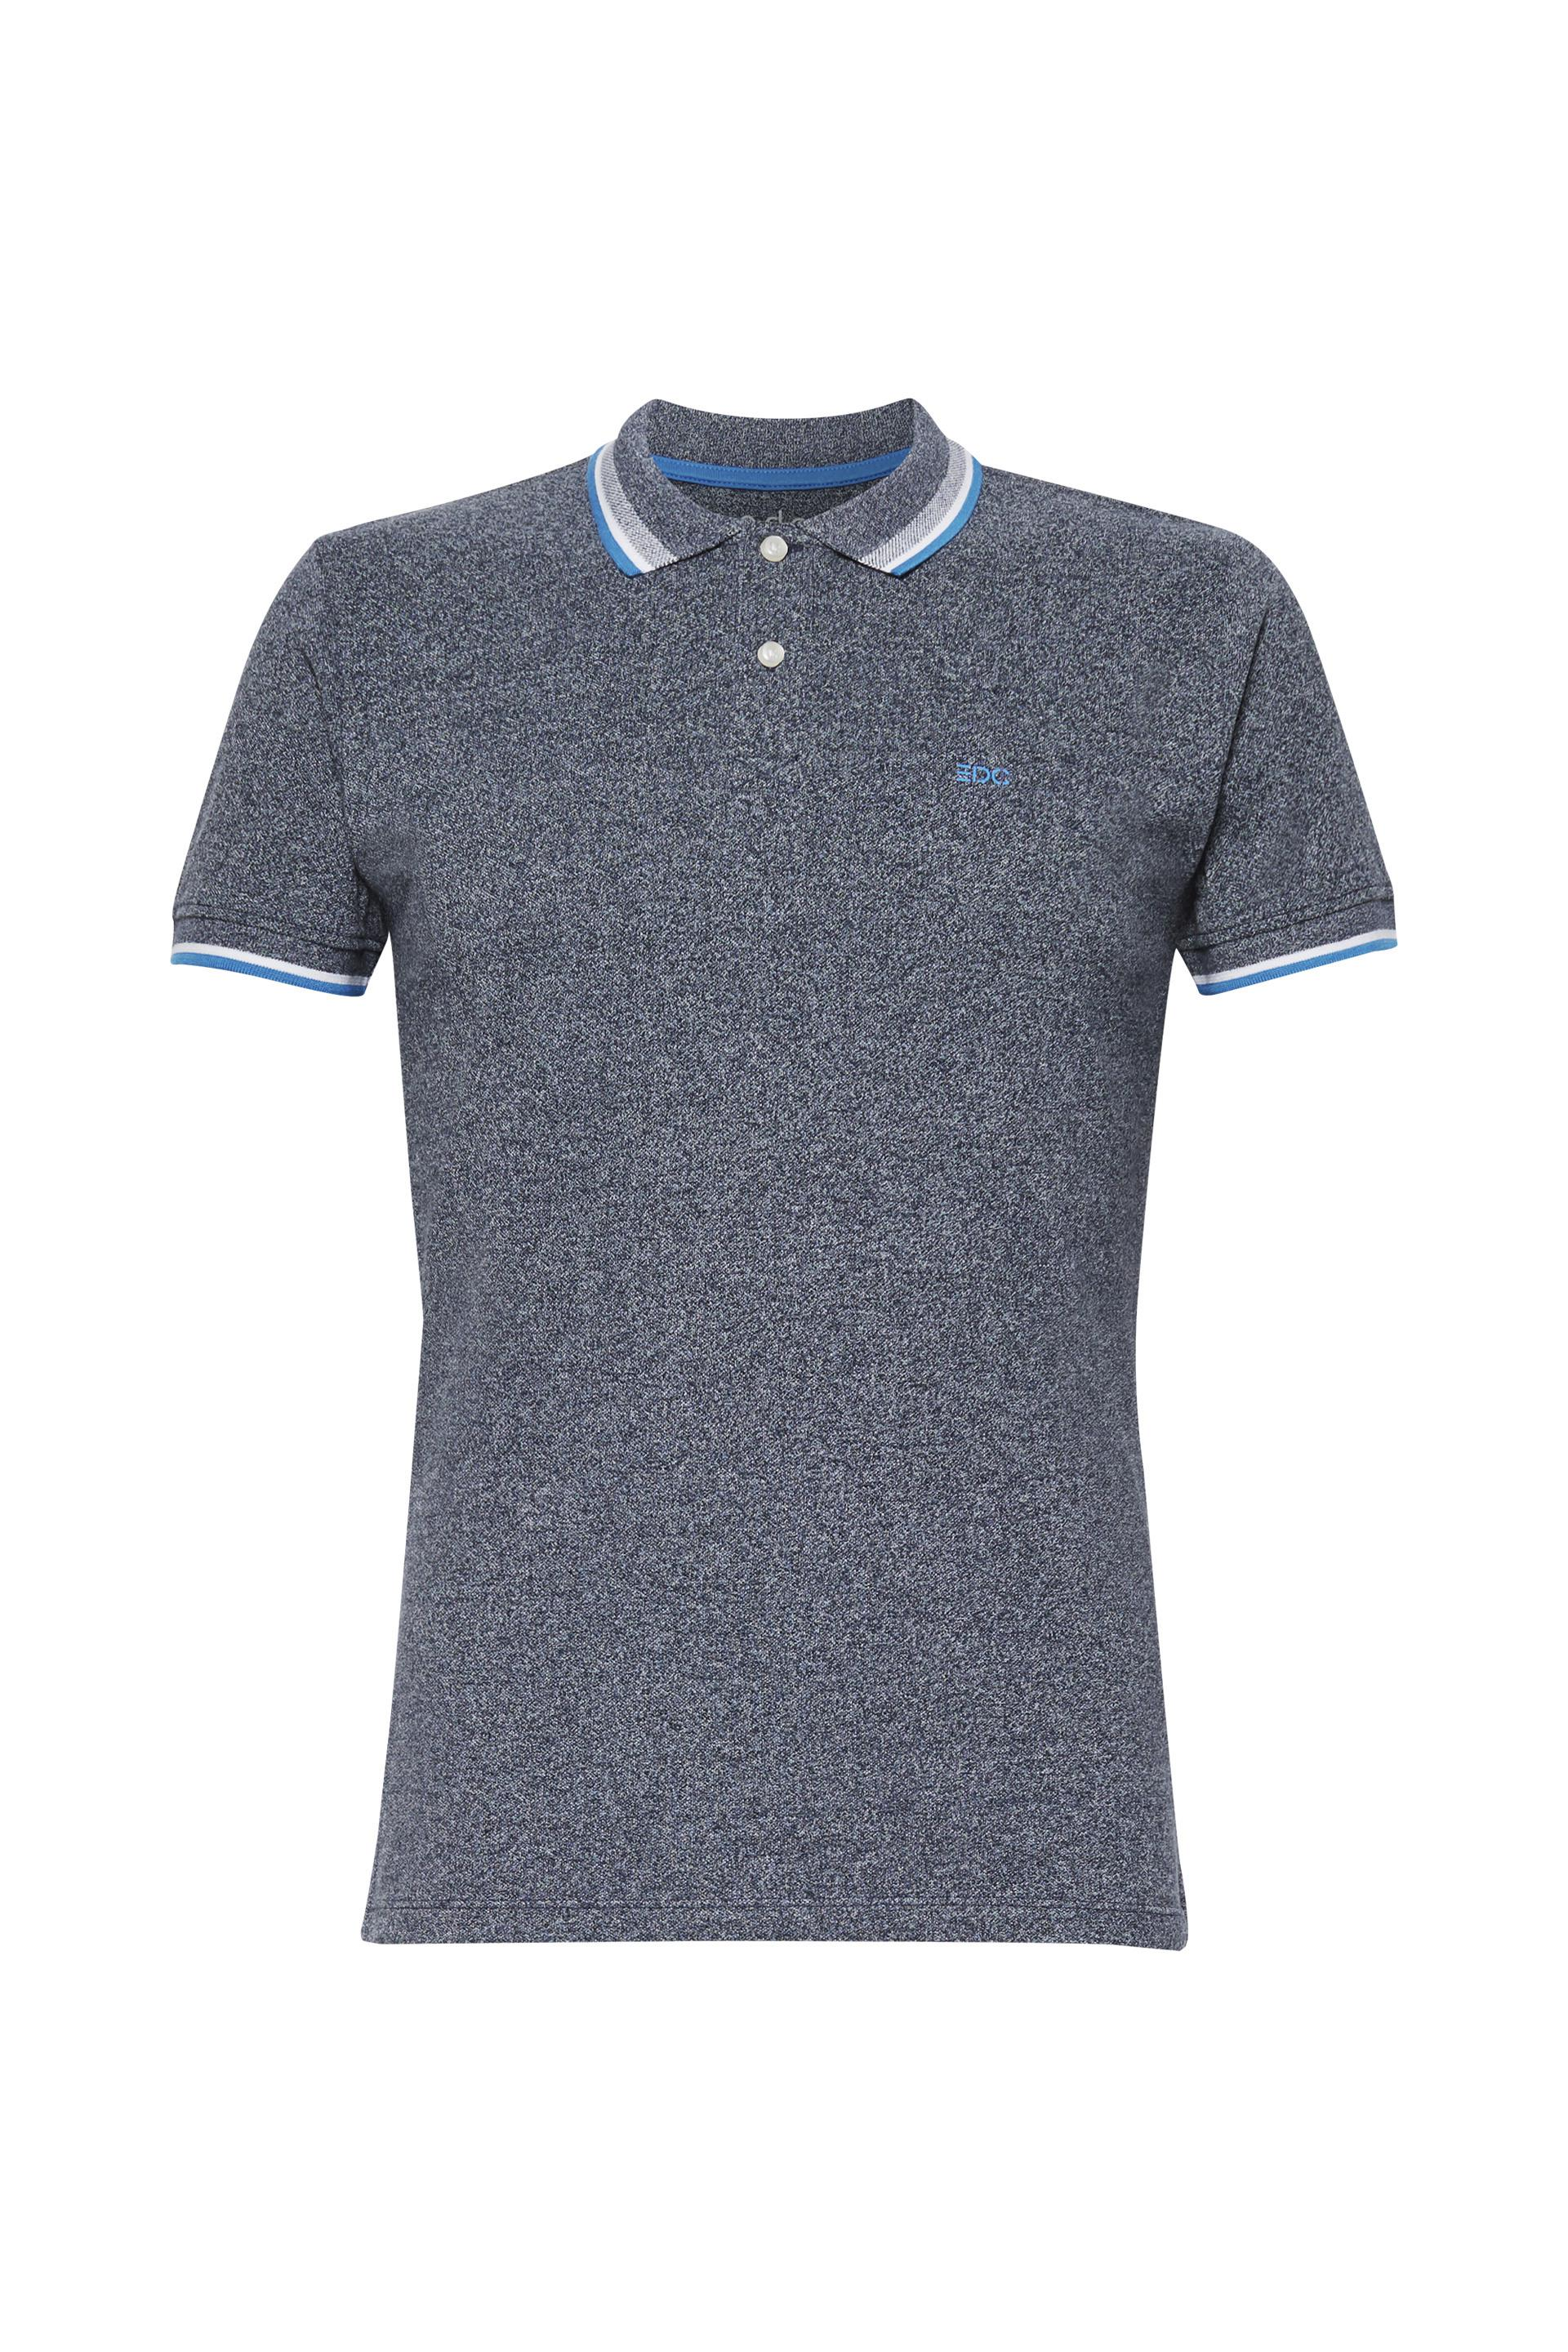 b48f8c8791a The accentuating stripes give this polo shirt its look.